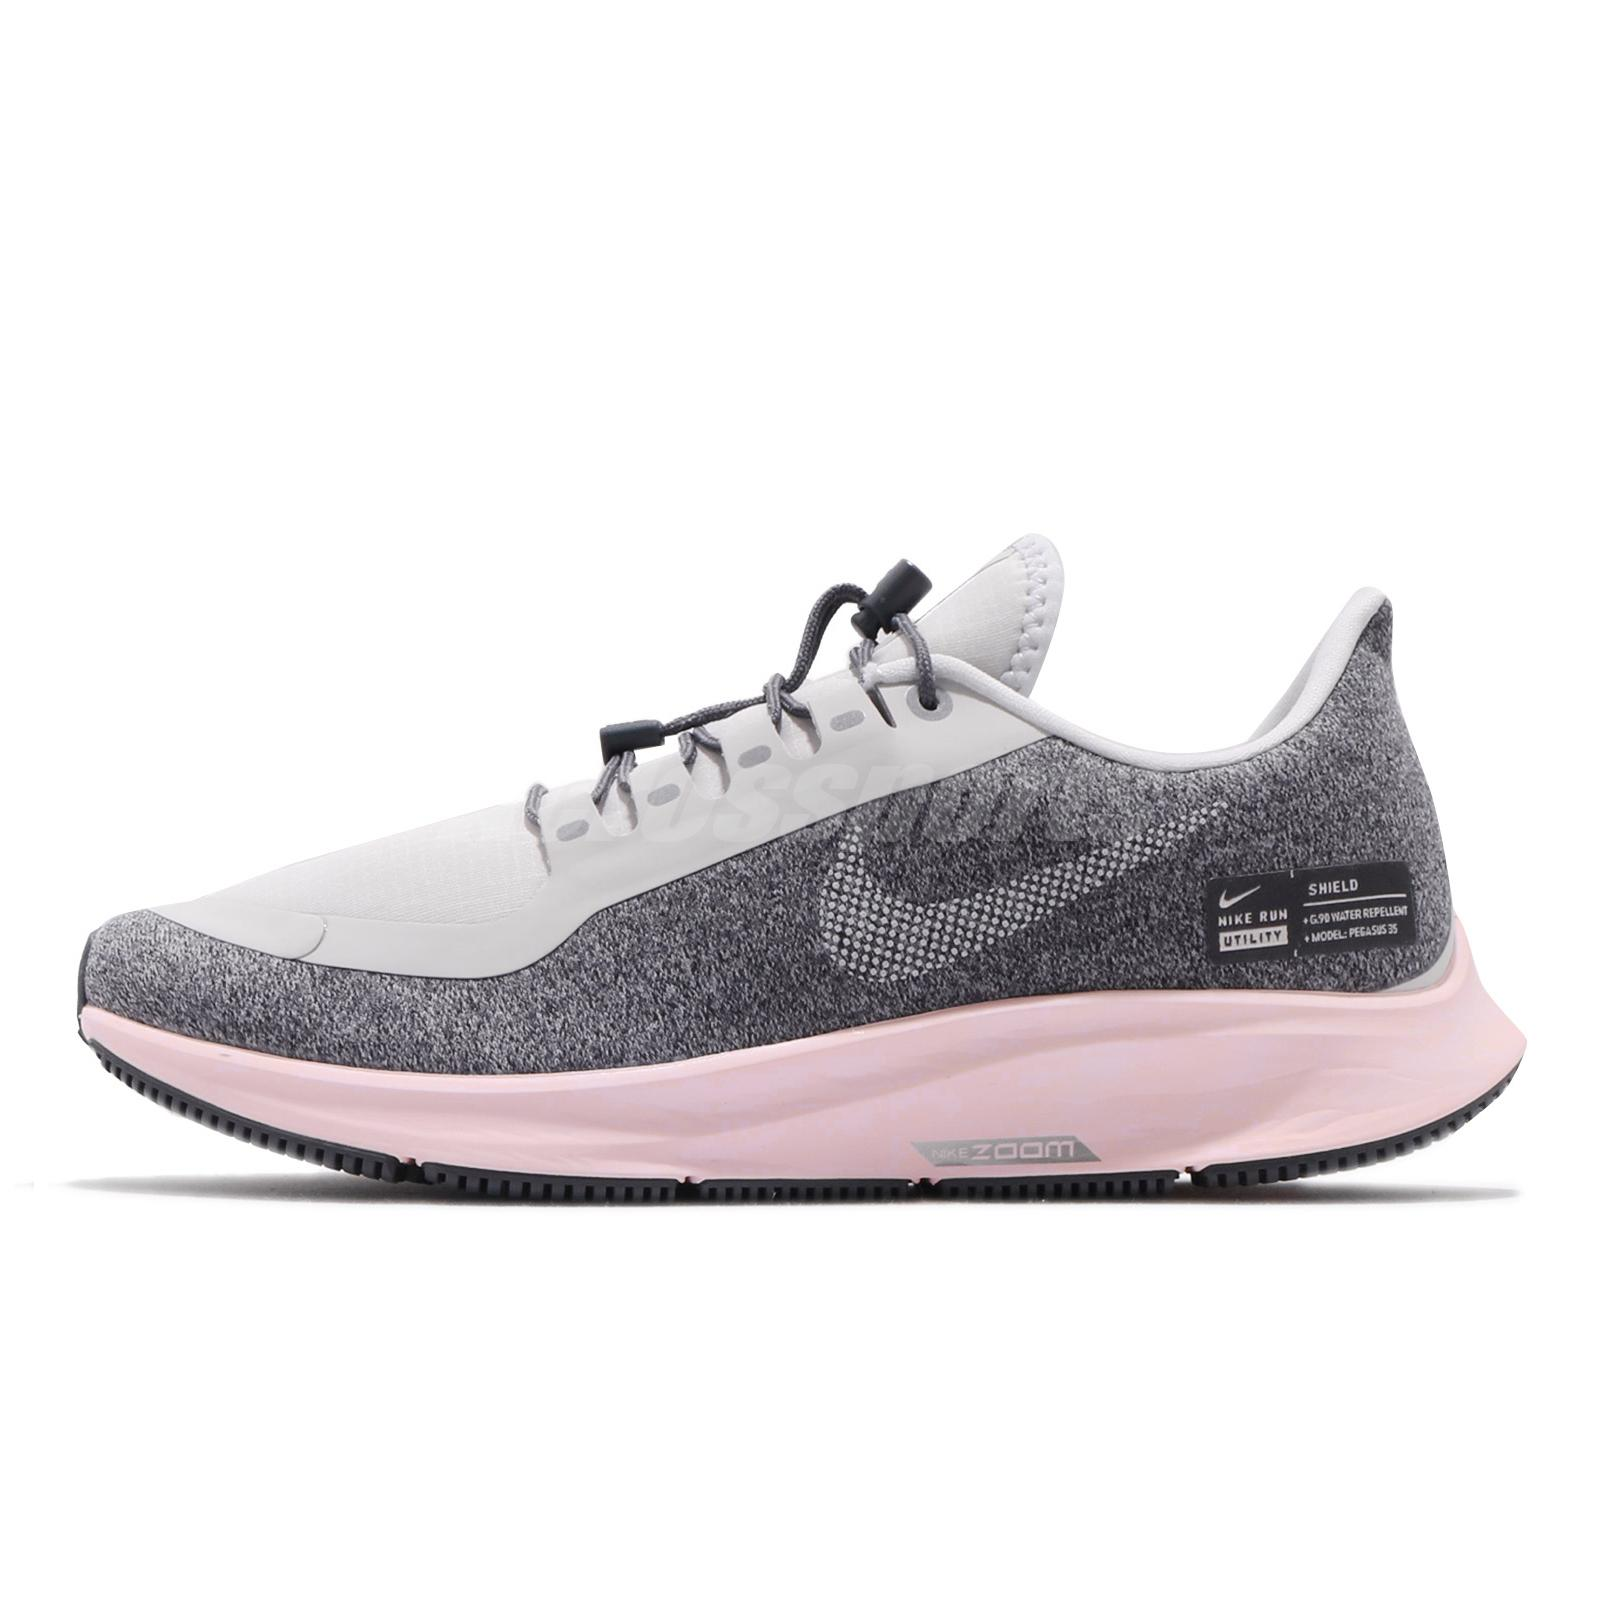 pretty nice 8dcdd 0d968 Details about Nike Wmns Air Zoom Pegasus 35 RN SHLD Grey Pink Women Running  Shoes AA1644-004